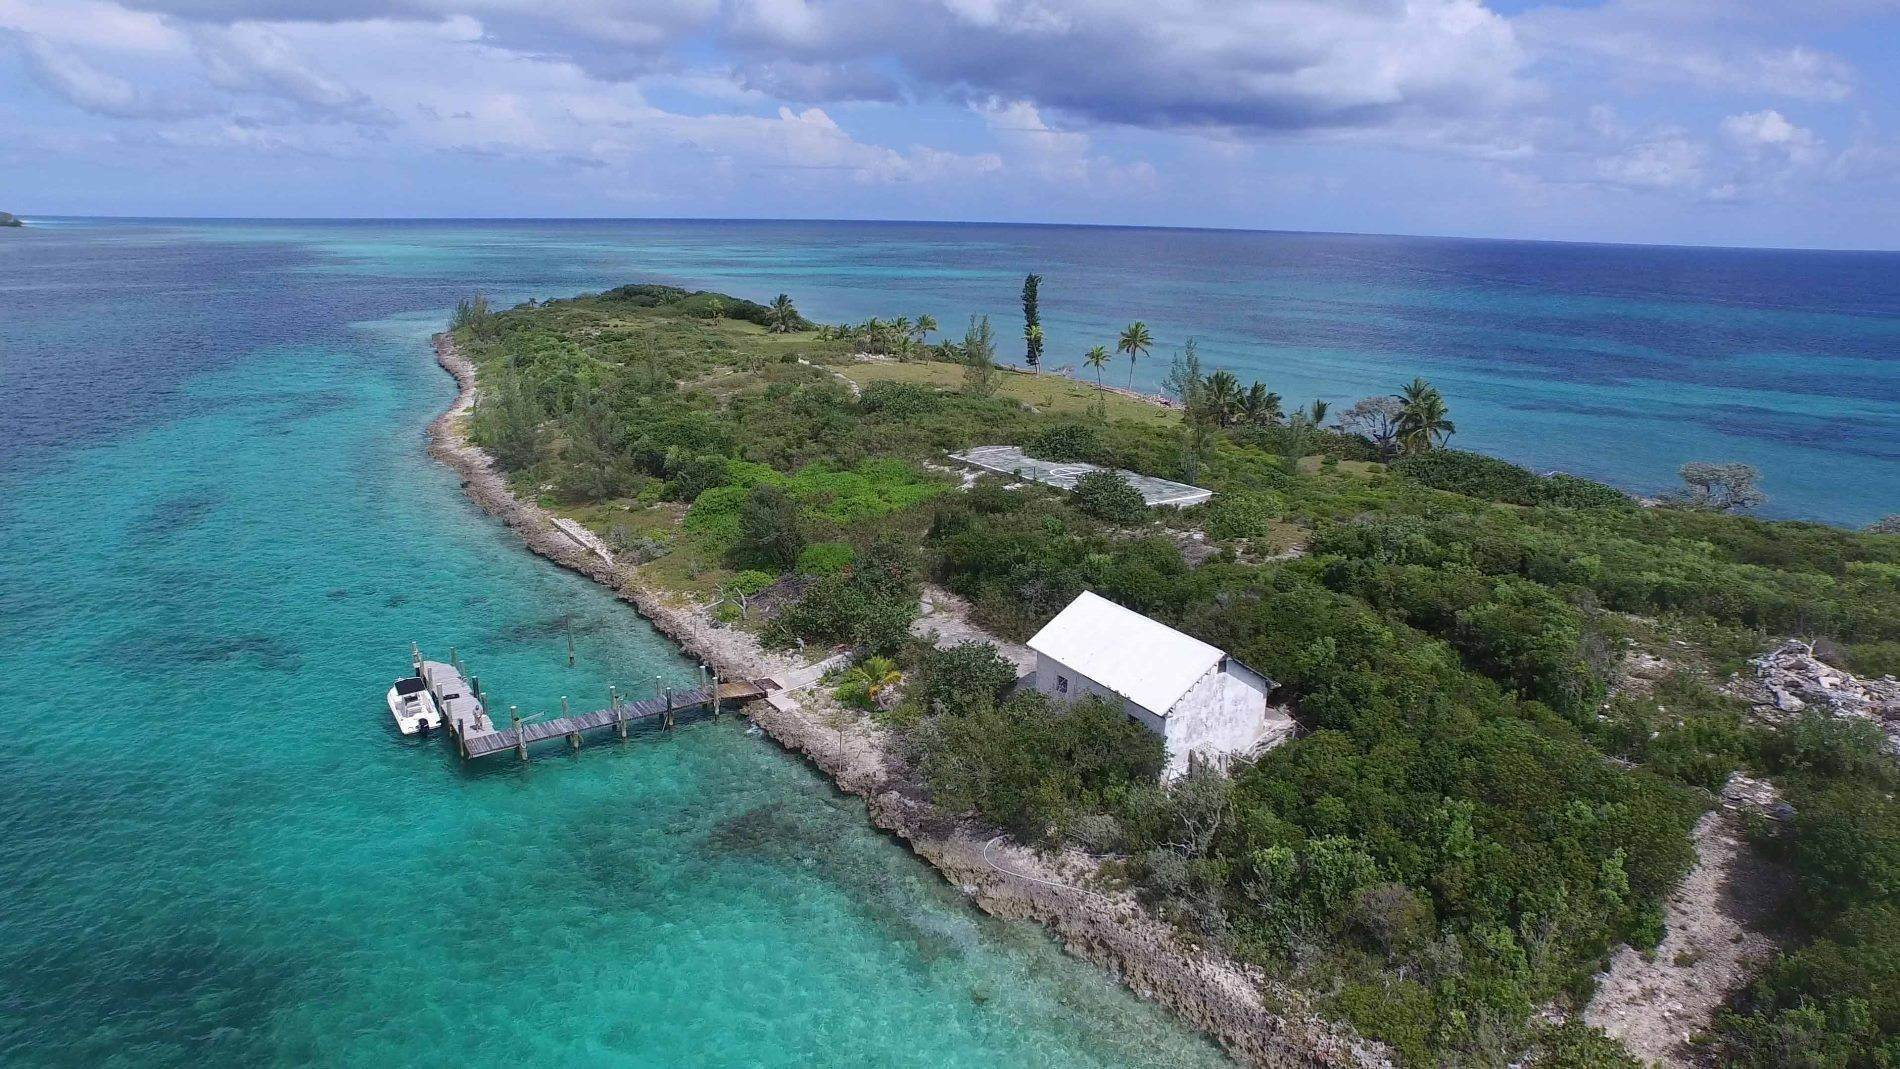 11. Private Islands for Sale at Pierre Island, A Perfect Private Retreat Island Near Harbour Island - MLS 40806 Harbour Island, Eleuthera, Bahamas